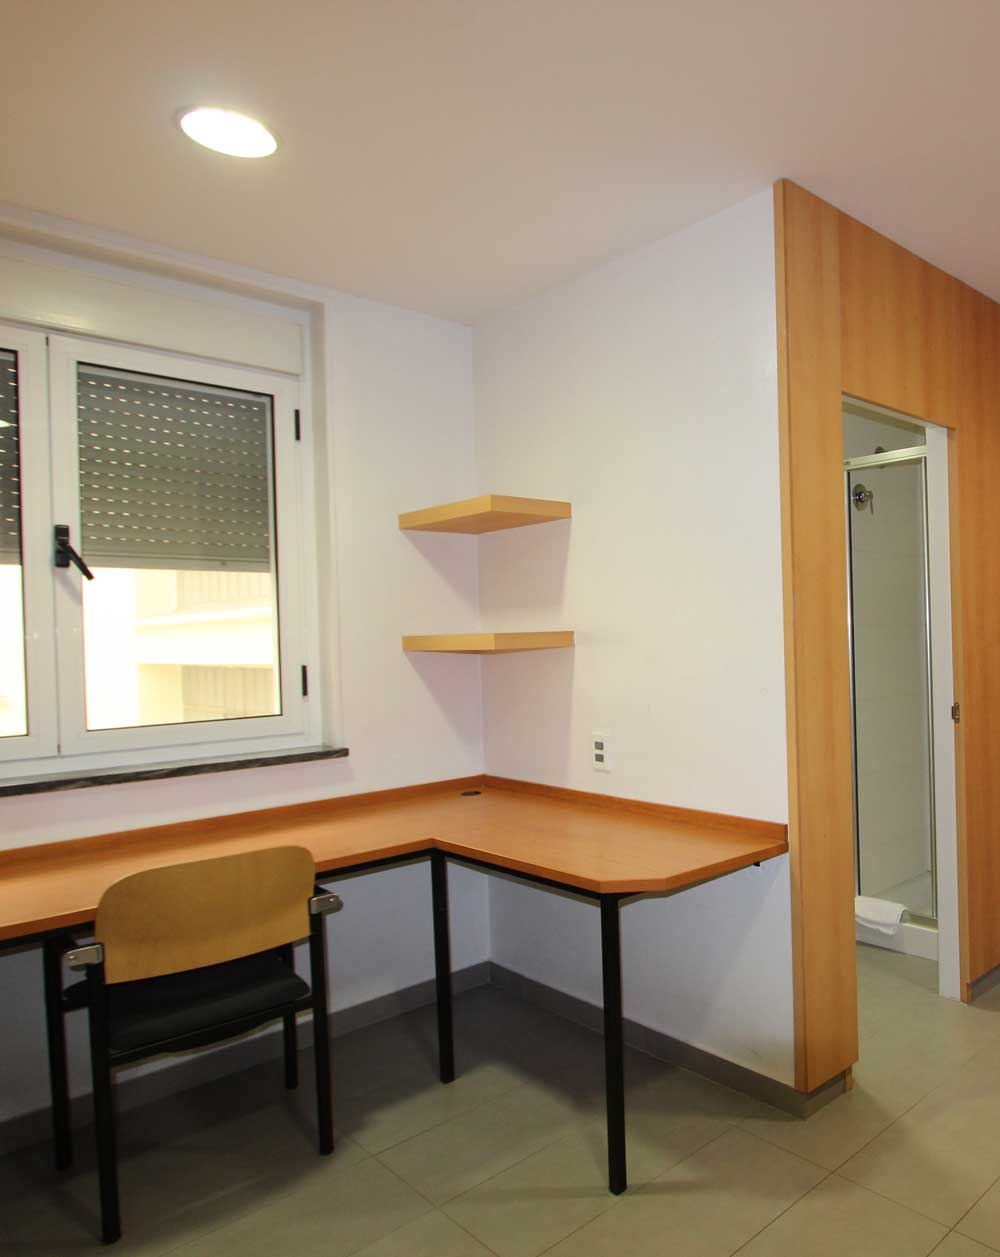 colegio-mayor-universitario-zaragoza-habitaciones